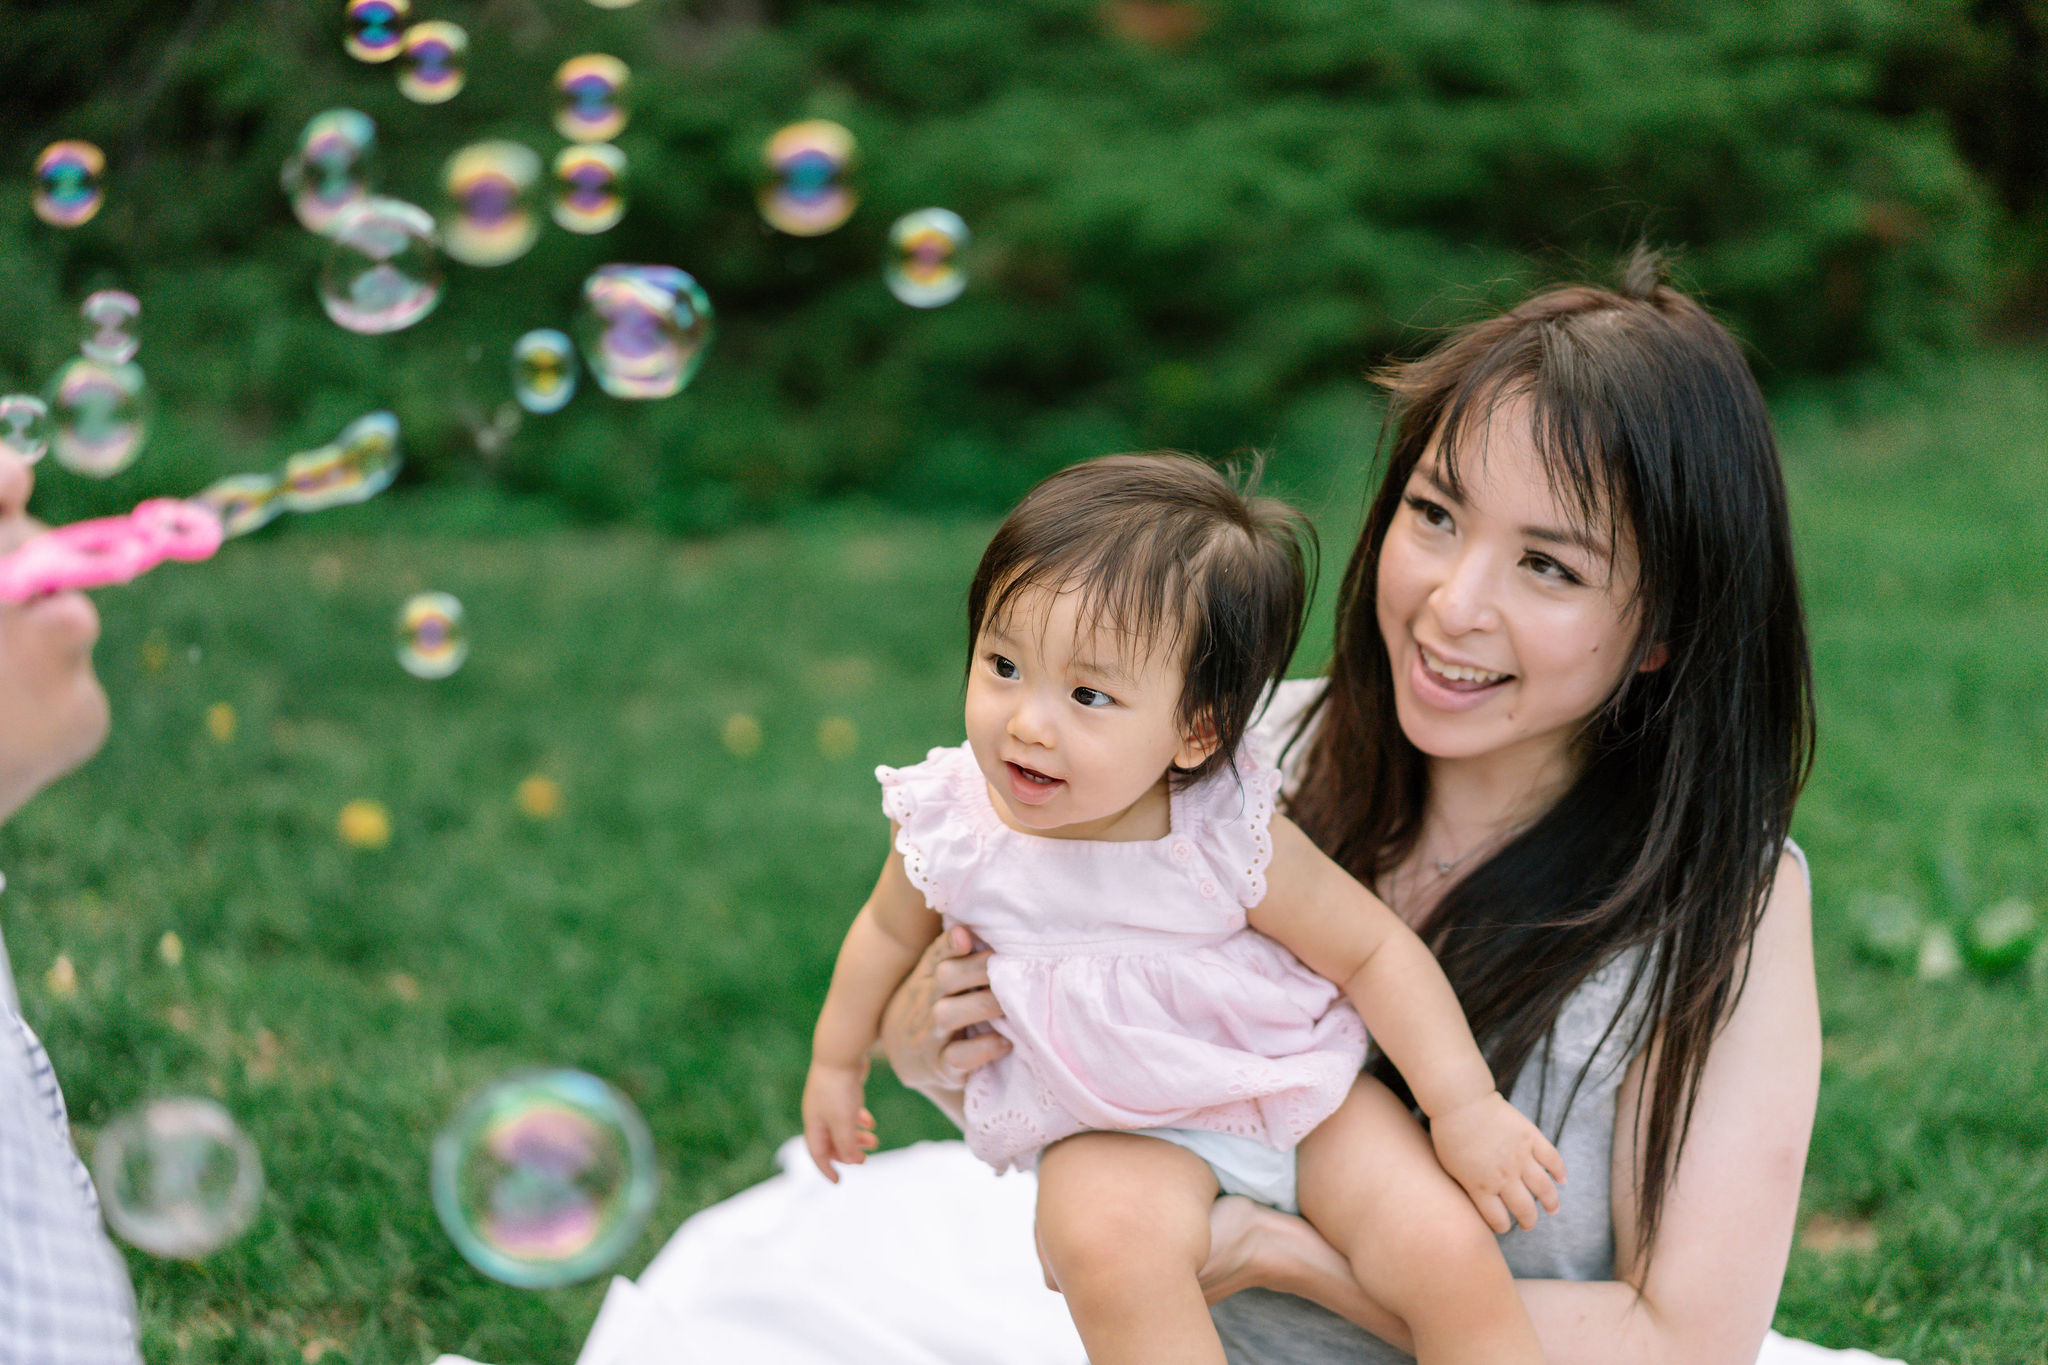 Mother and daughter watching bubbles being blown towards them